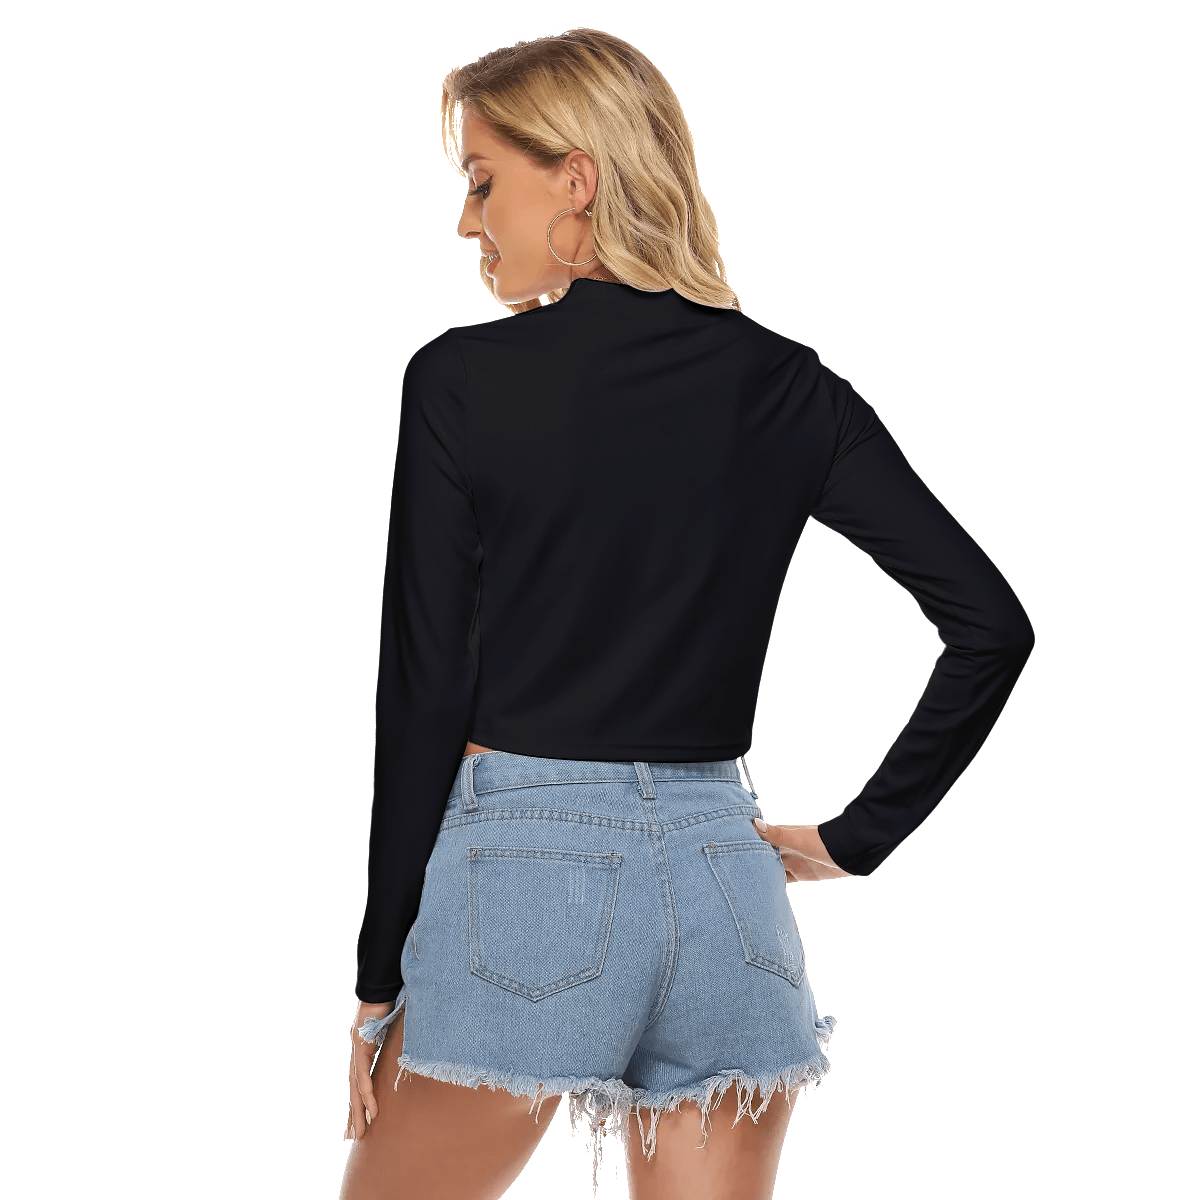 Hallow chest tight crop top black TGC fashion 3rdpartypeople.com back